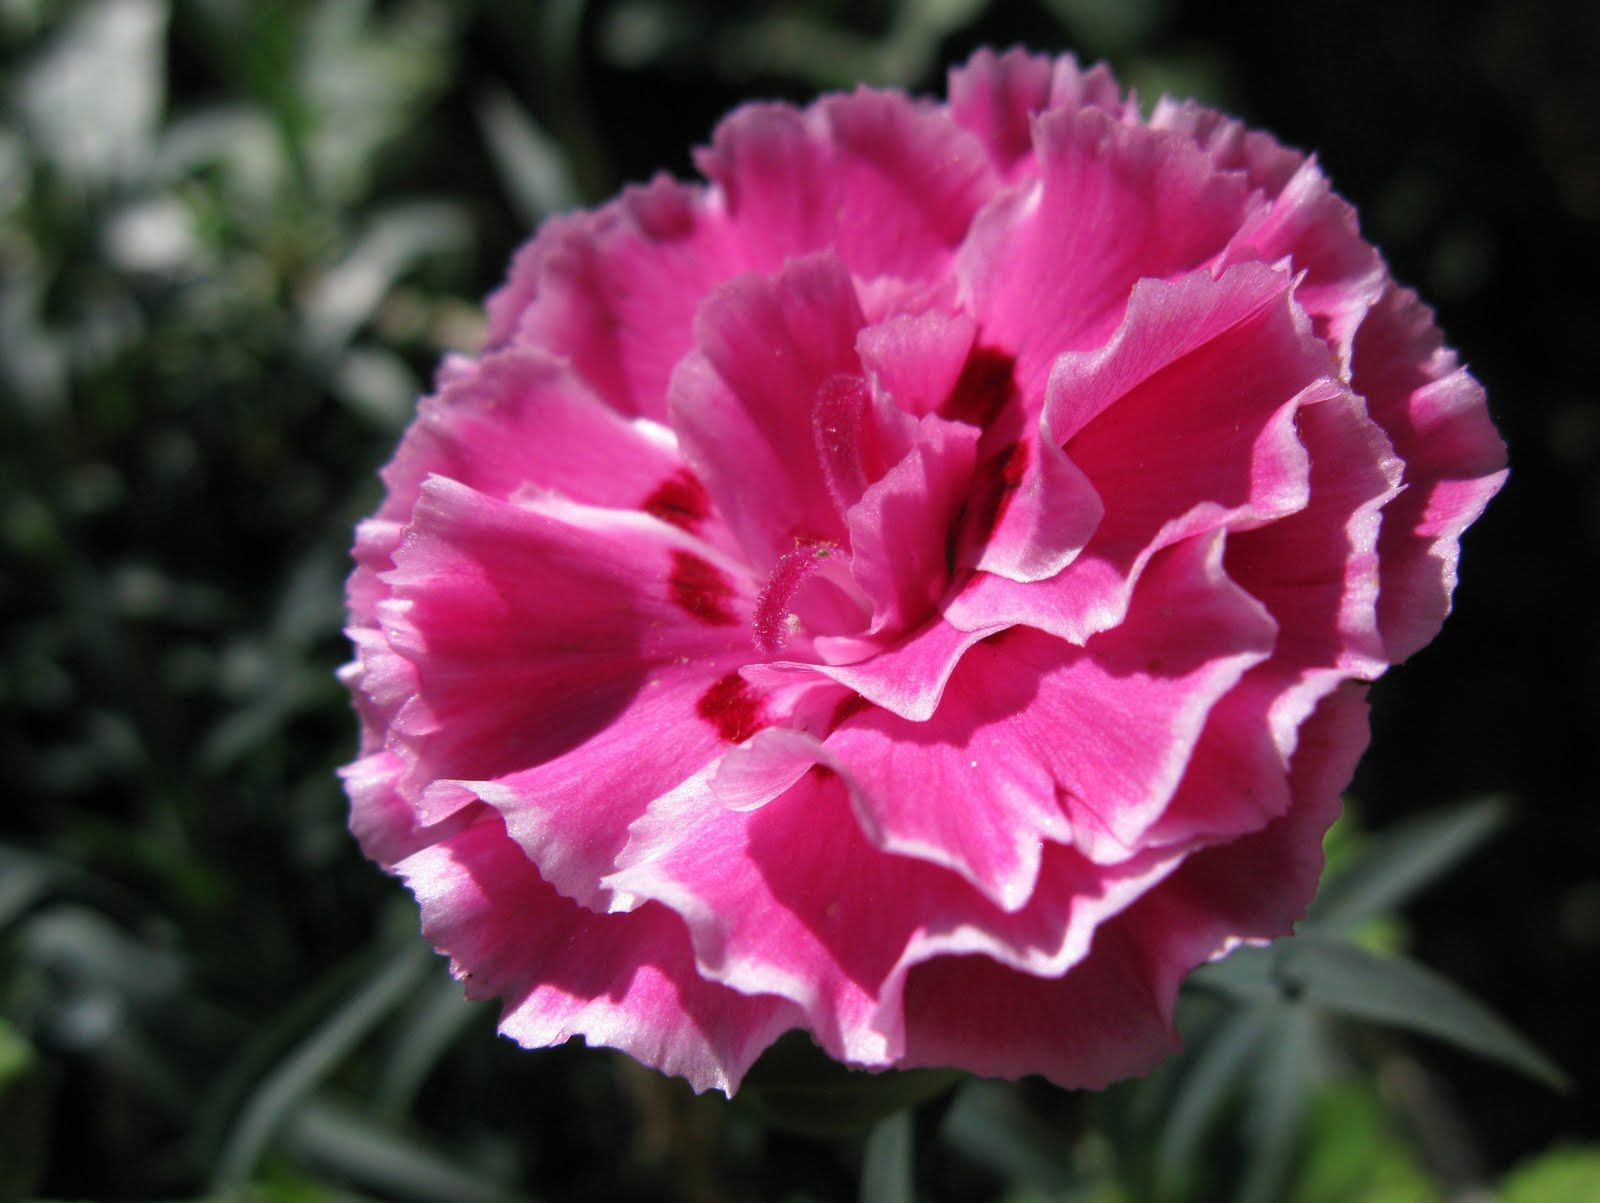 Carnation Dianthus Caryophyllus Native To Southern Europe Used In Medieval Arabic Perfumery As Well As During The Tudor Times O Flowers Carnations Plants